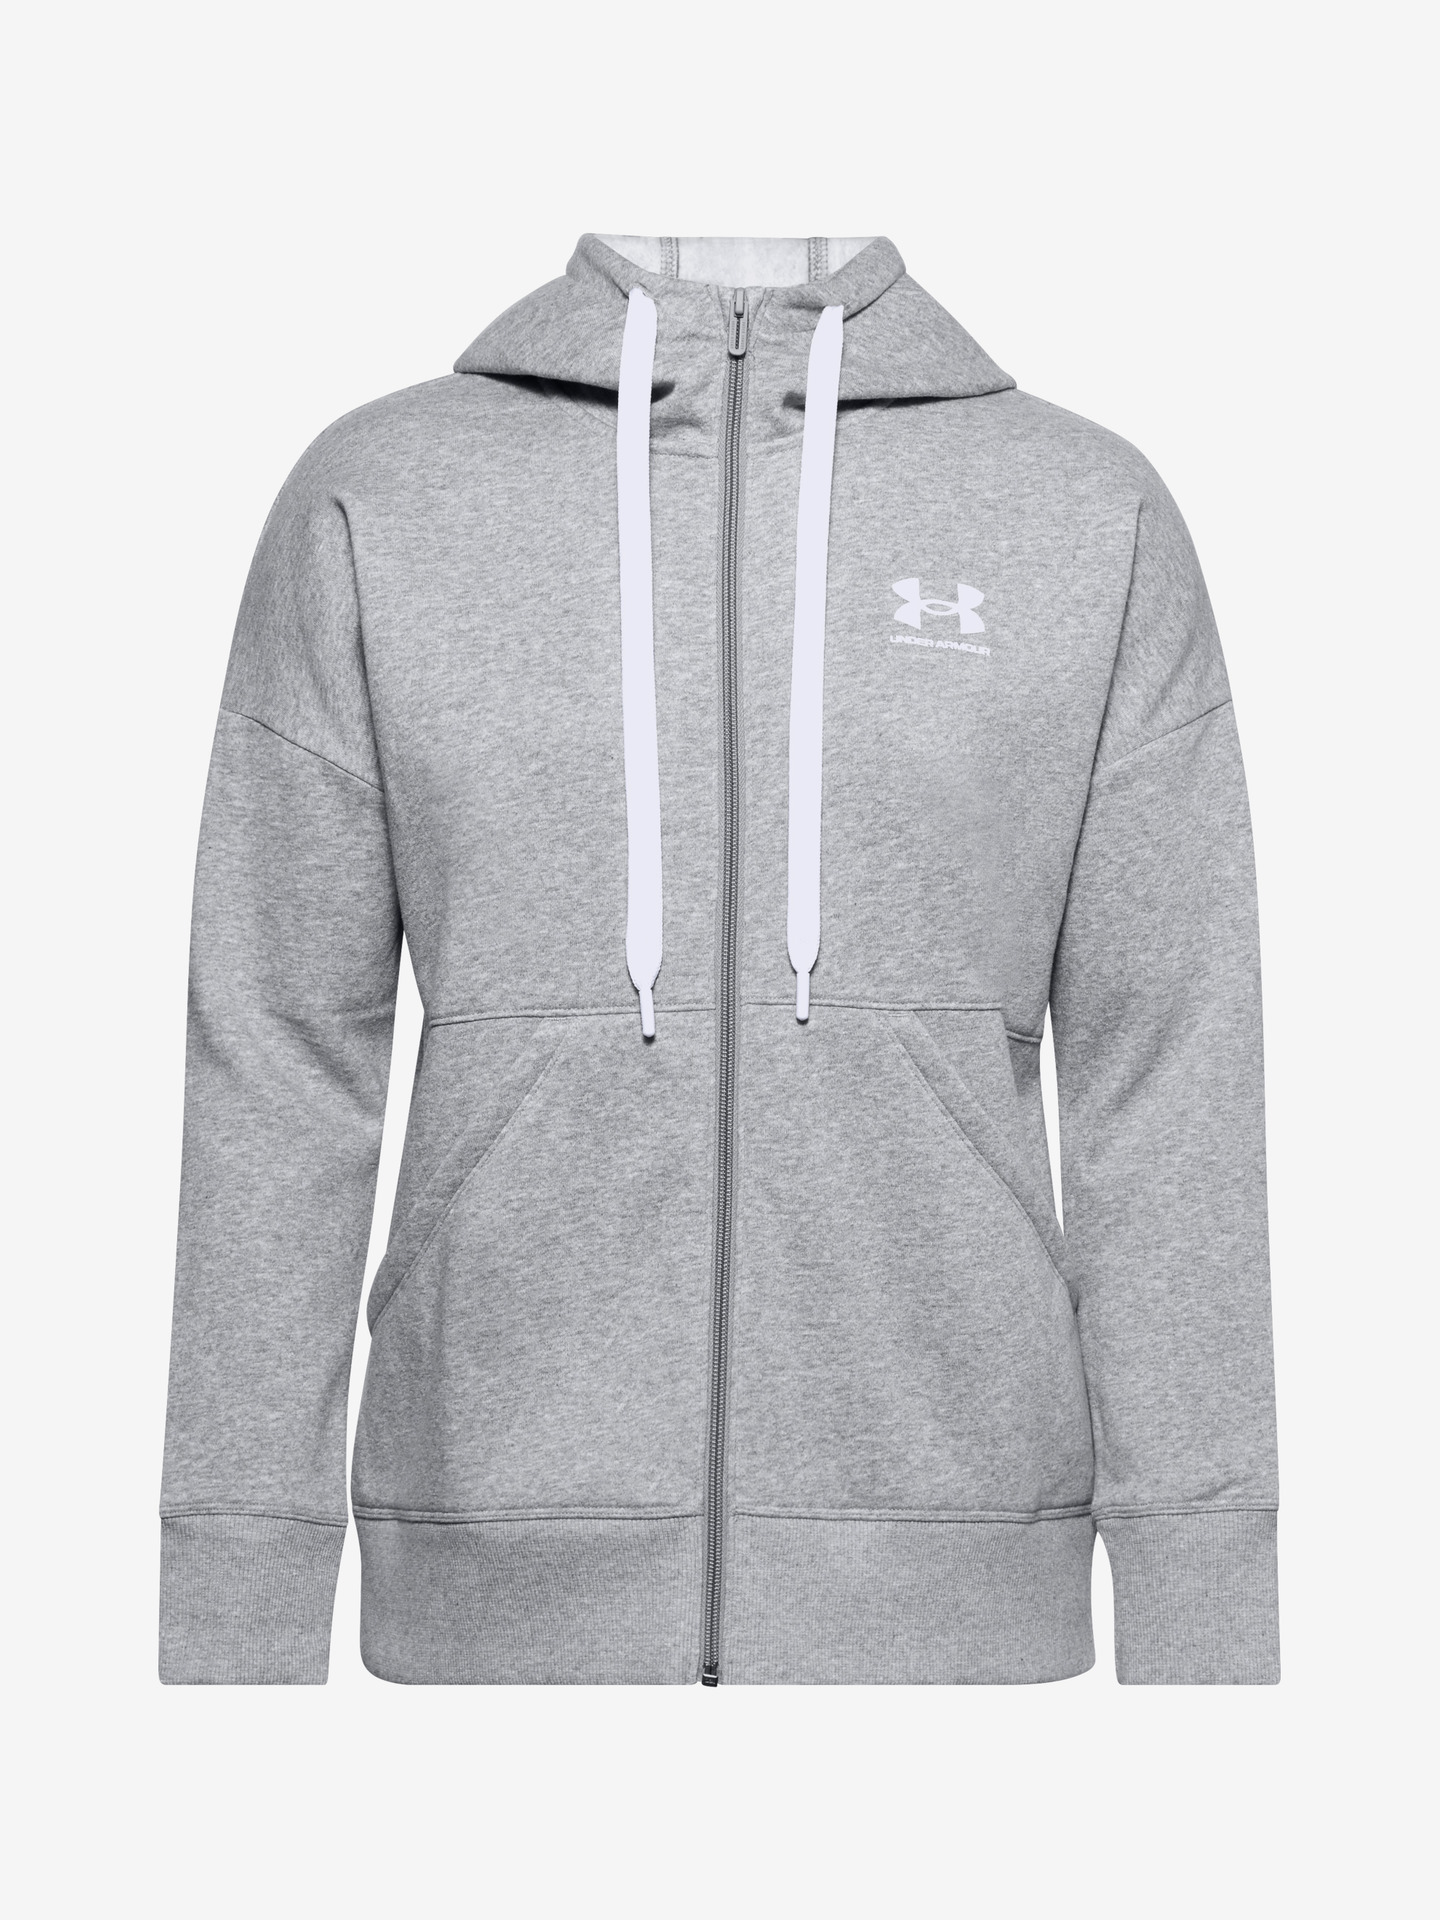 Rival Fleece Full Zip Mikina Under Armour Šedá